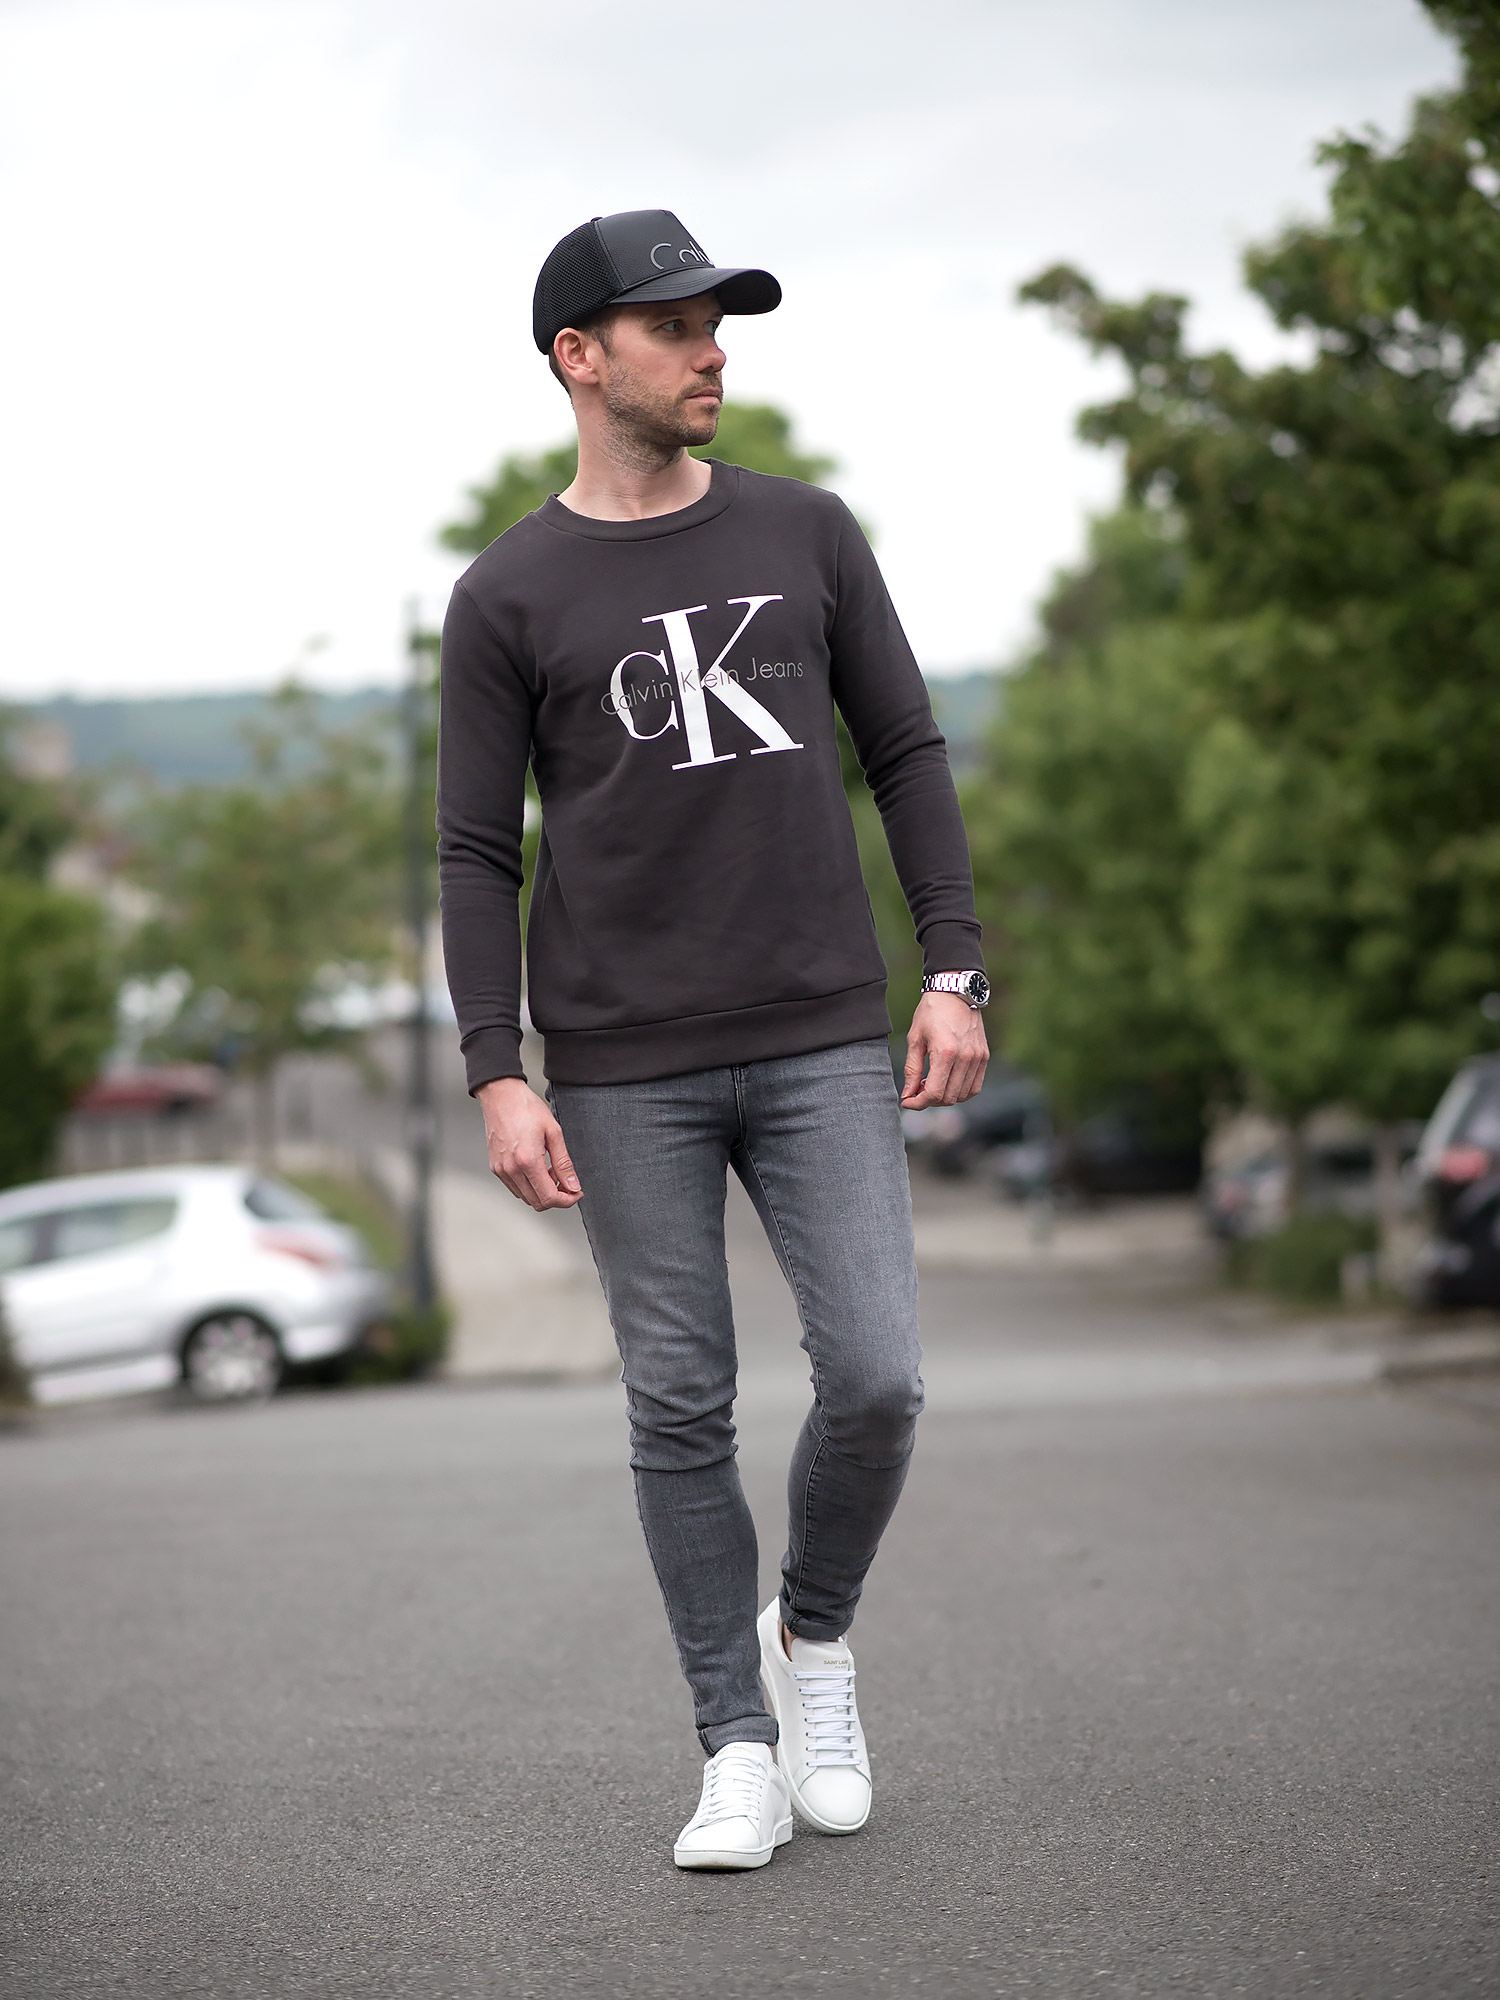 Calvin Klein Sweatshirt And J Brand Grey Skinny Jeans Outfit   Your Average Guy